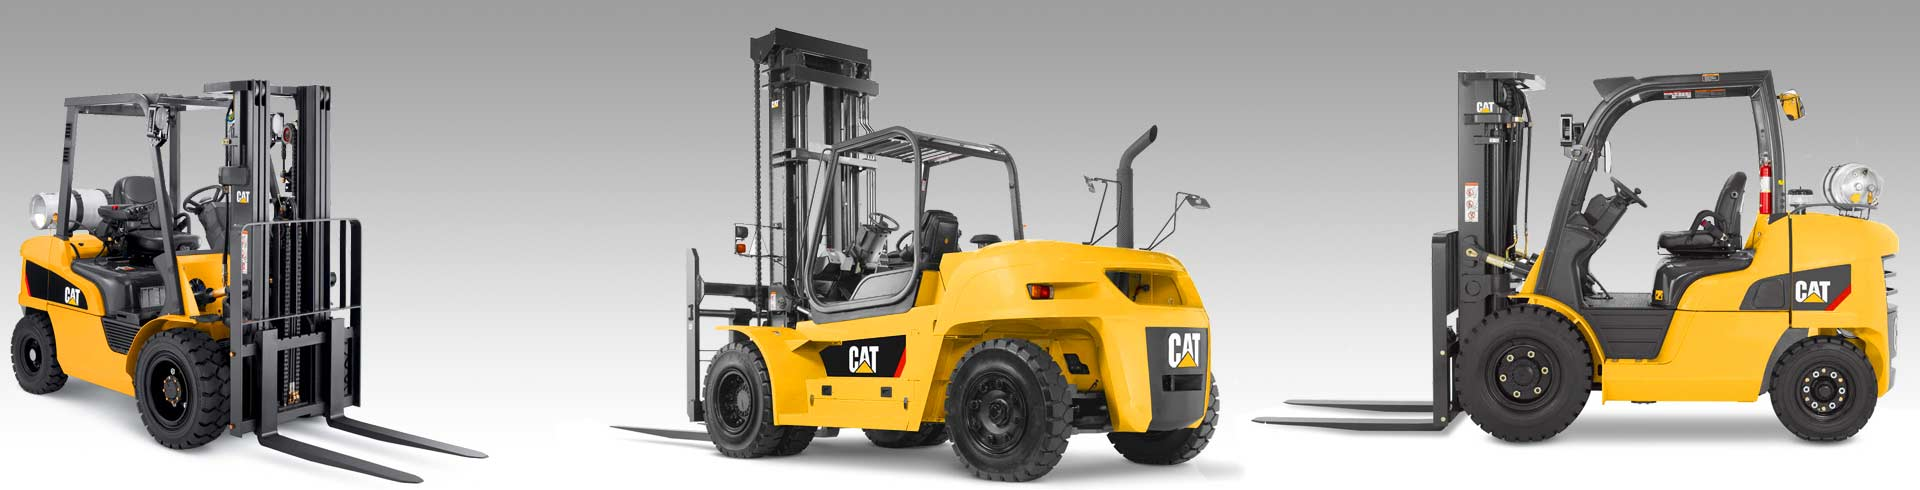 Forklifts for Sale, New & Used Forklifts, Service & Parts